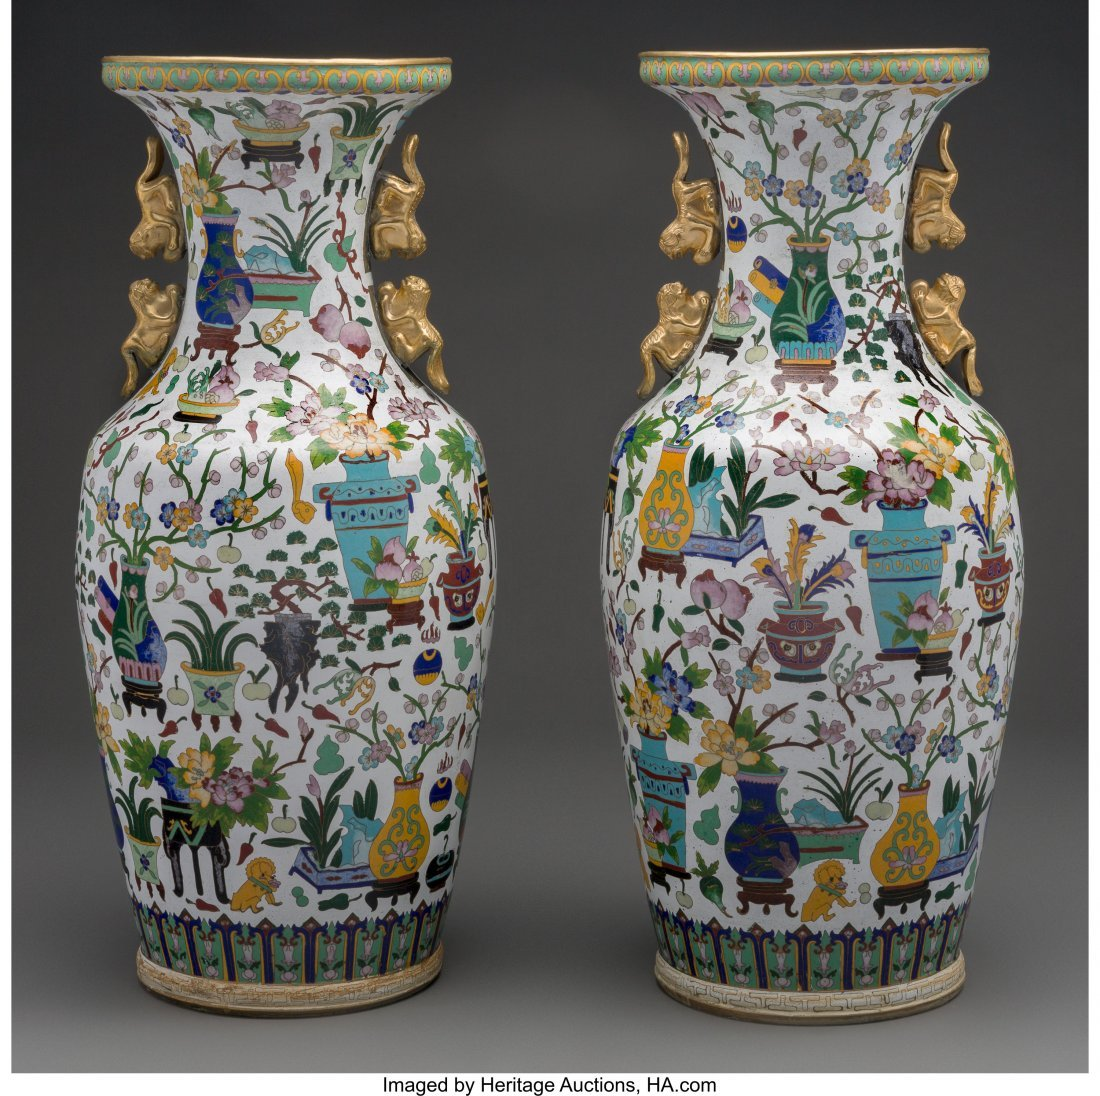 63947: A Pair of Chinese Cloisonné Vases with Figural